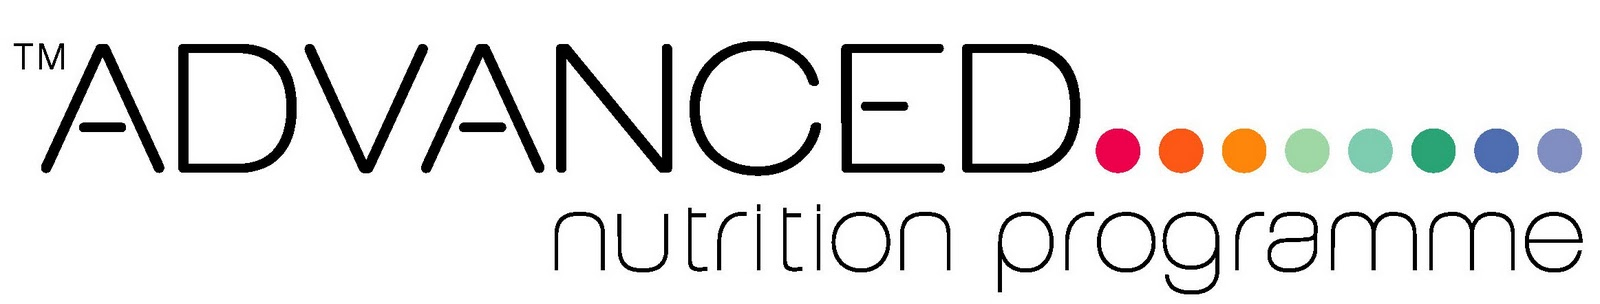 advanced-nutrition-programme.jpg